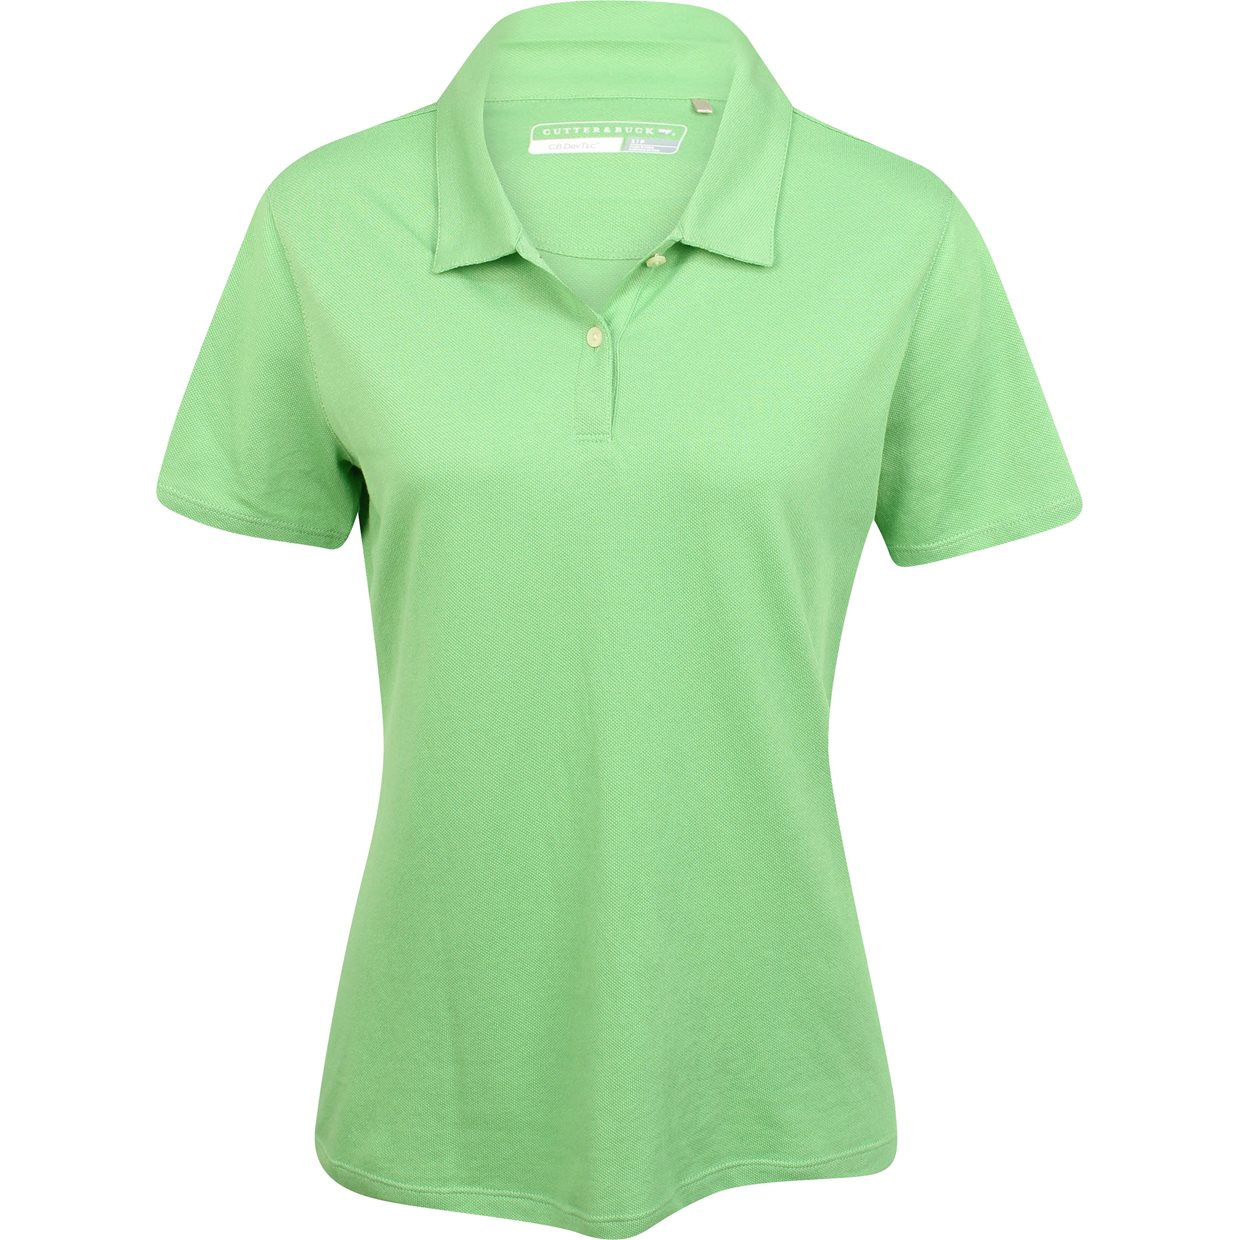 Women cutter buck drytec elliot bay shirt apparel at for Cutter buck polo shirt size chart